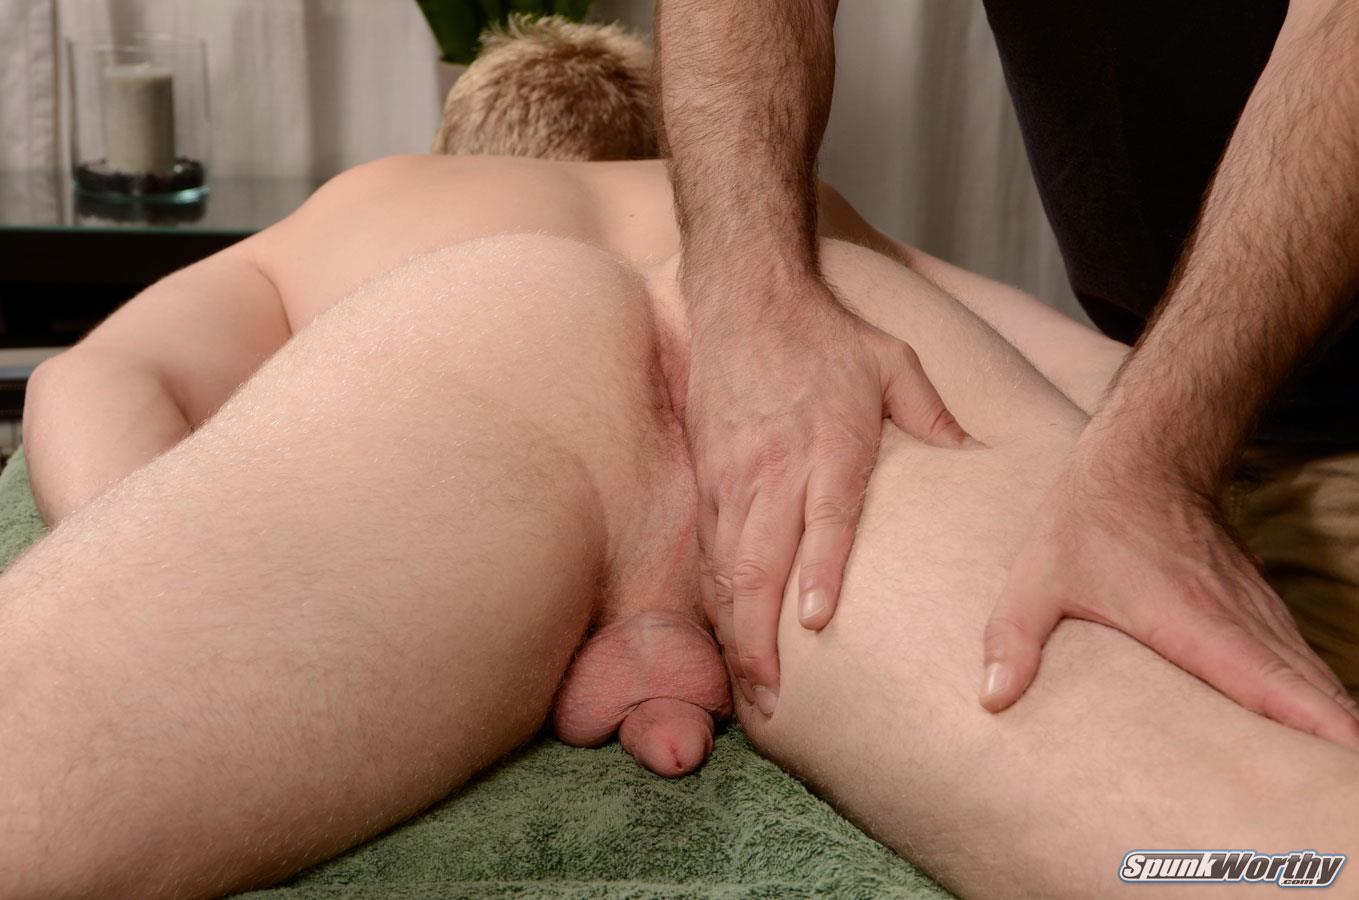 David039s cock massage straight guy seduced for gay porn 3